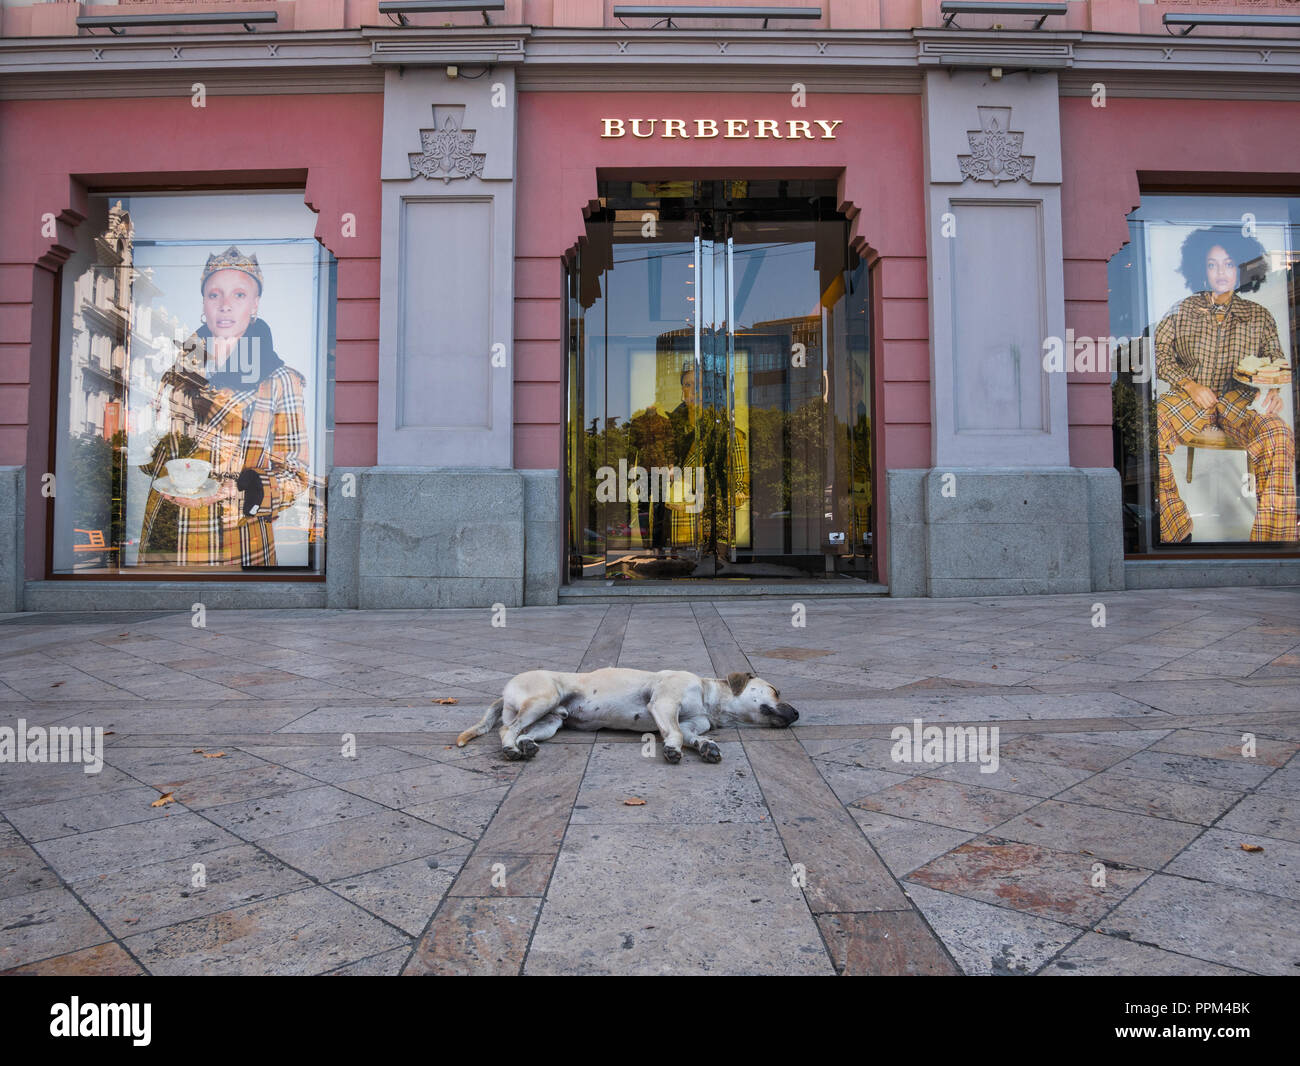 A stray dog snoozes in the shade in front of the Burberry retail store in Freedom Square, Tbilisi, Georgia. - Stock Image